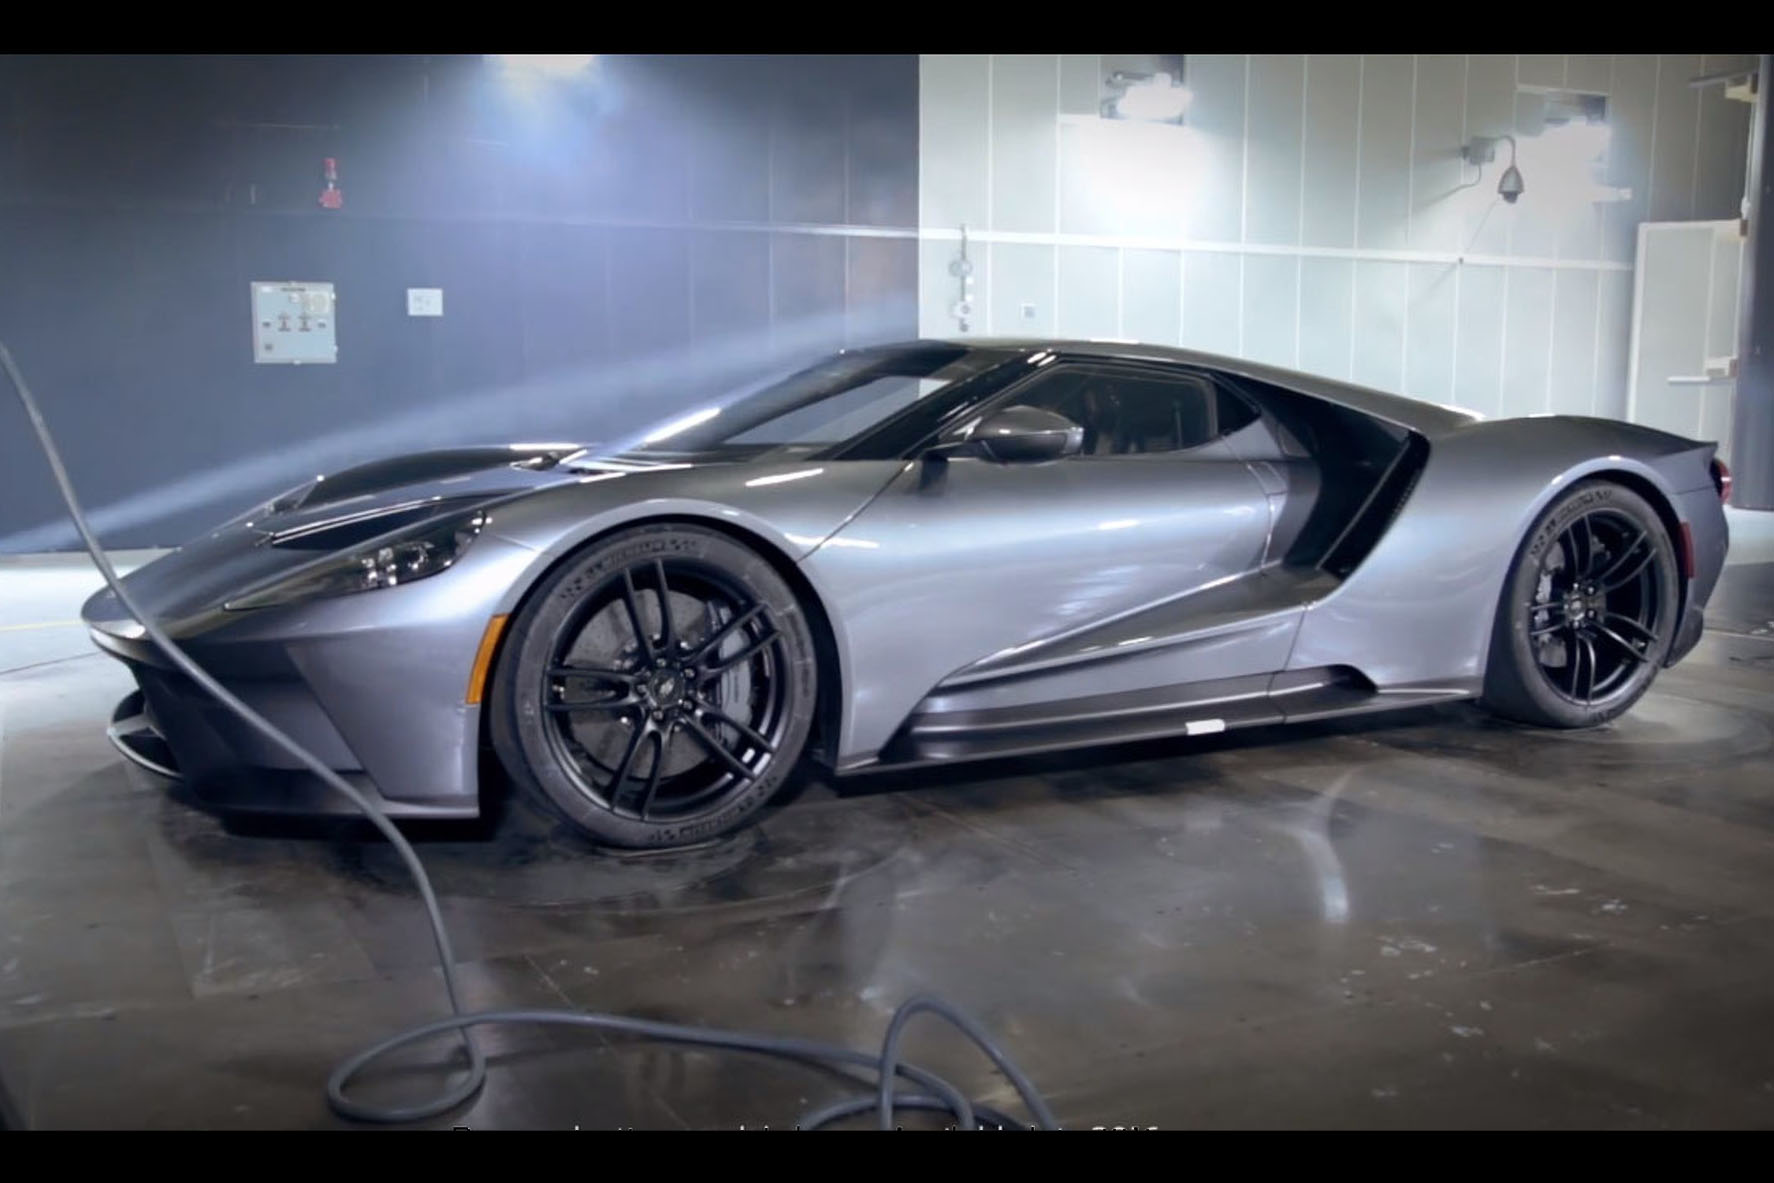 Video See The Ford Gts Amazing Aero Package At Work During Wind Tunnel Testing